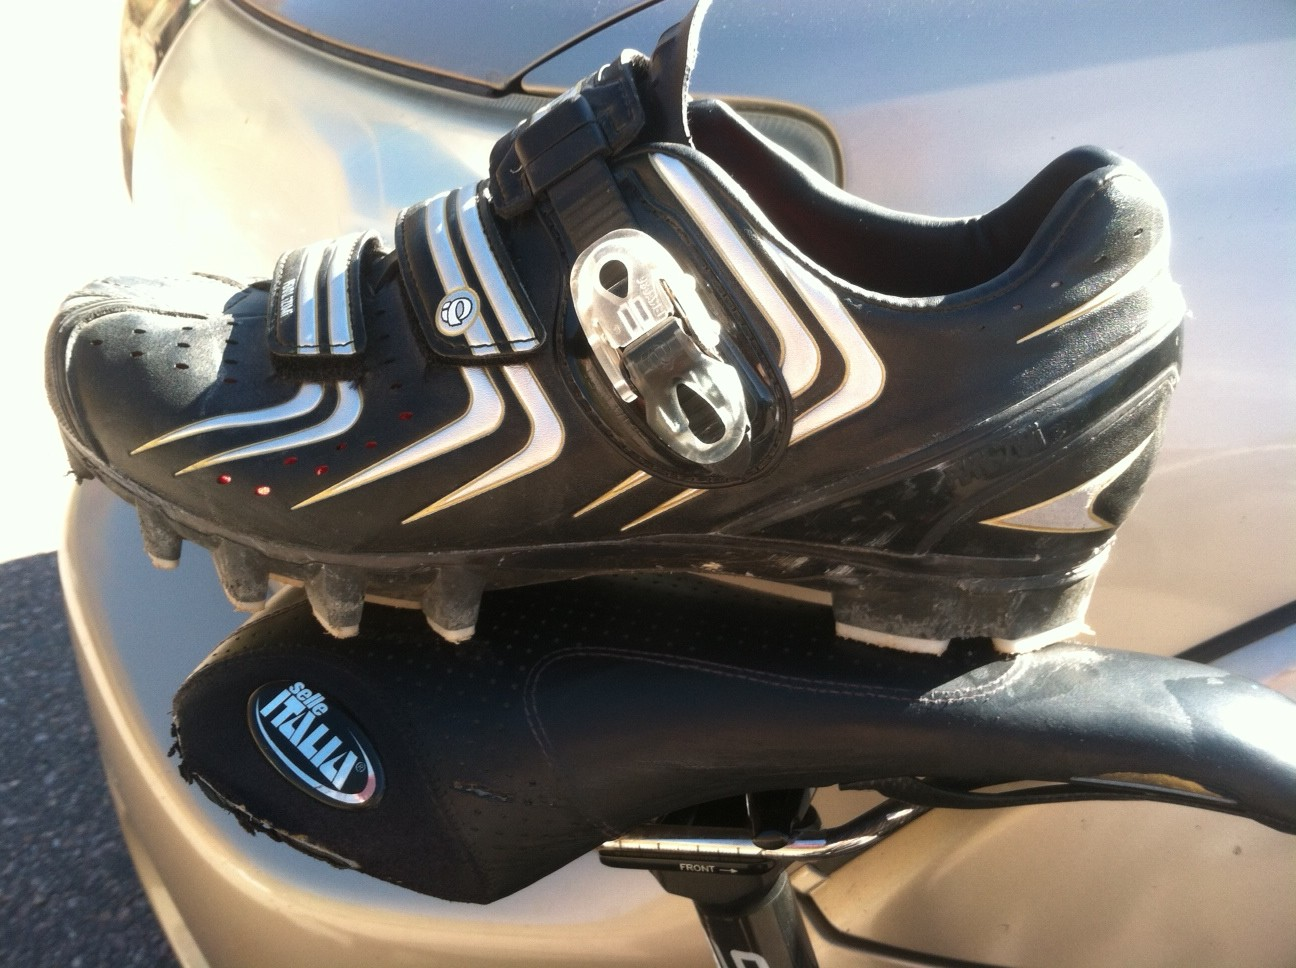 Pearl Izumi Elite MTB II mountain bike shoes. D2's RATING: 4/5 stars. Pros: carbon sole, snazzy upper, easy to use buckle, comfortable fit. CONS: stiff upper can be uncomfortable around the ankle; tread makes it hard to get in and out of pedals; sizing seems a bit off.